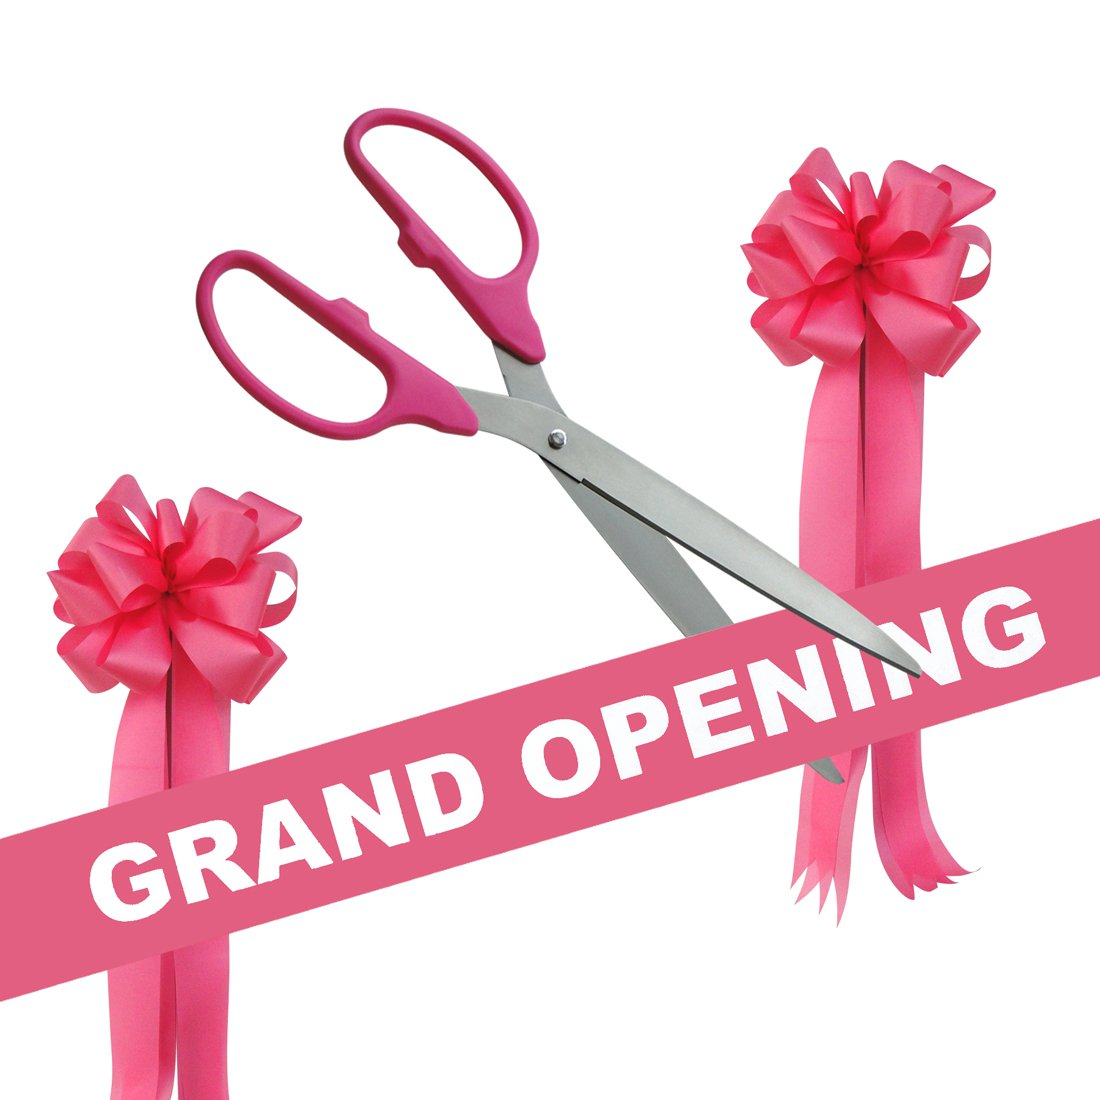 Grand Opening Kit - 36'' Pink/Silver Ceremonial Ribbon Cutting Scissors with 5 Yards of 6'' Pink Grand Opening Ribbon and 2 Pink Bows by Engraving, Awards & Gifts